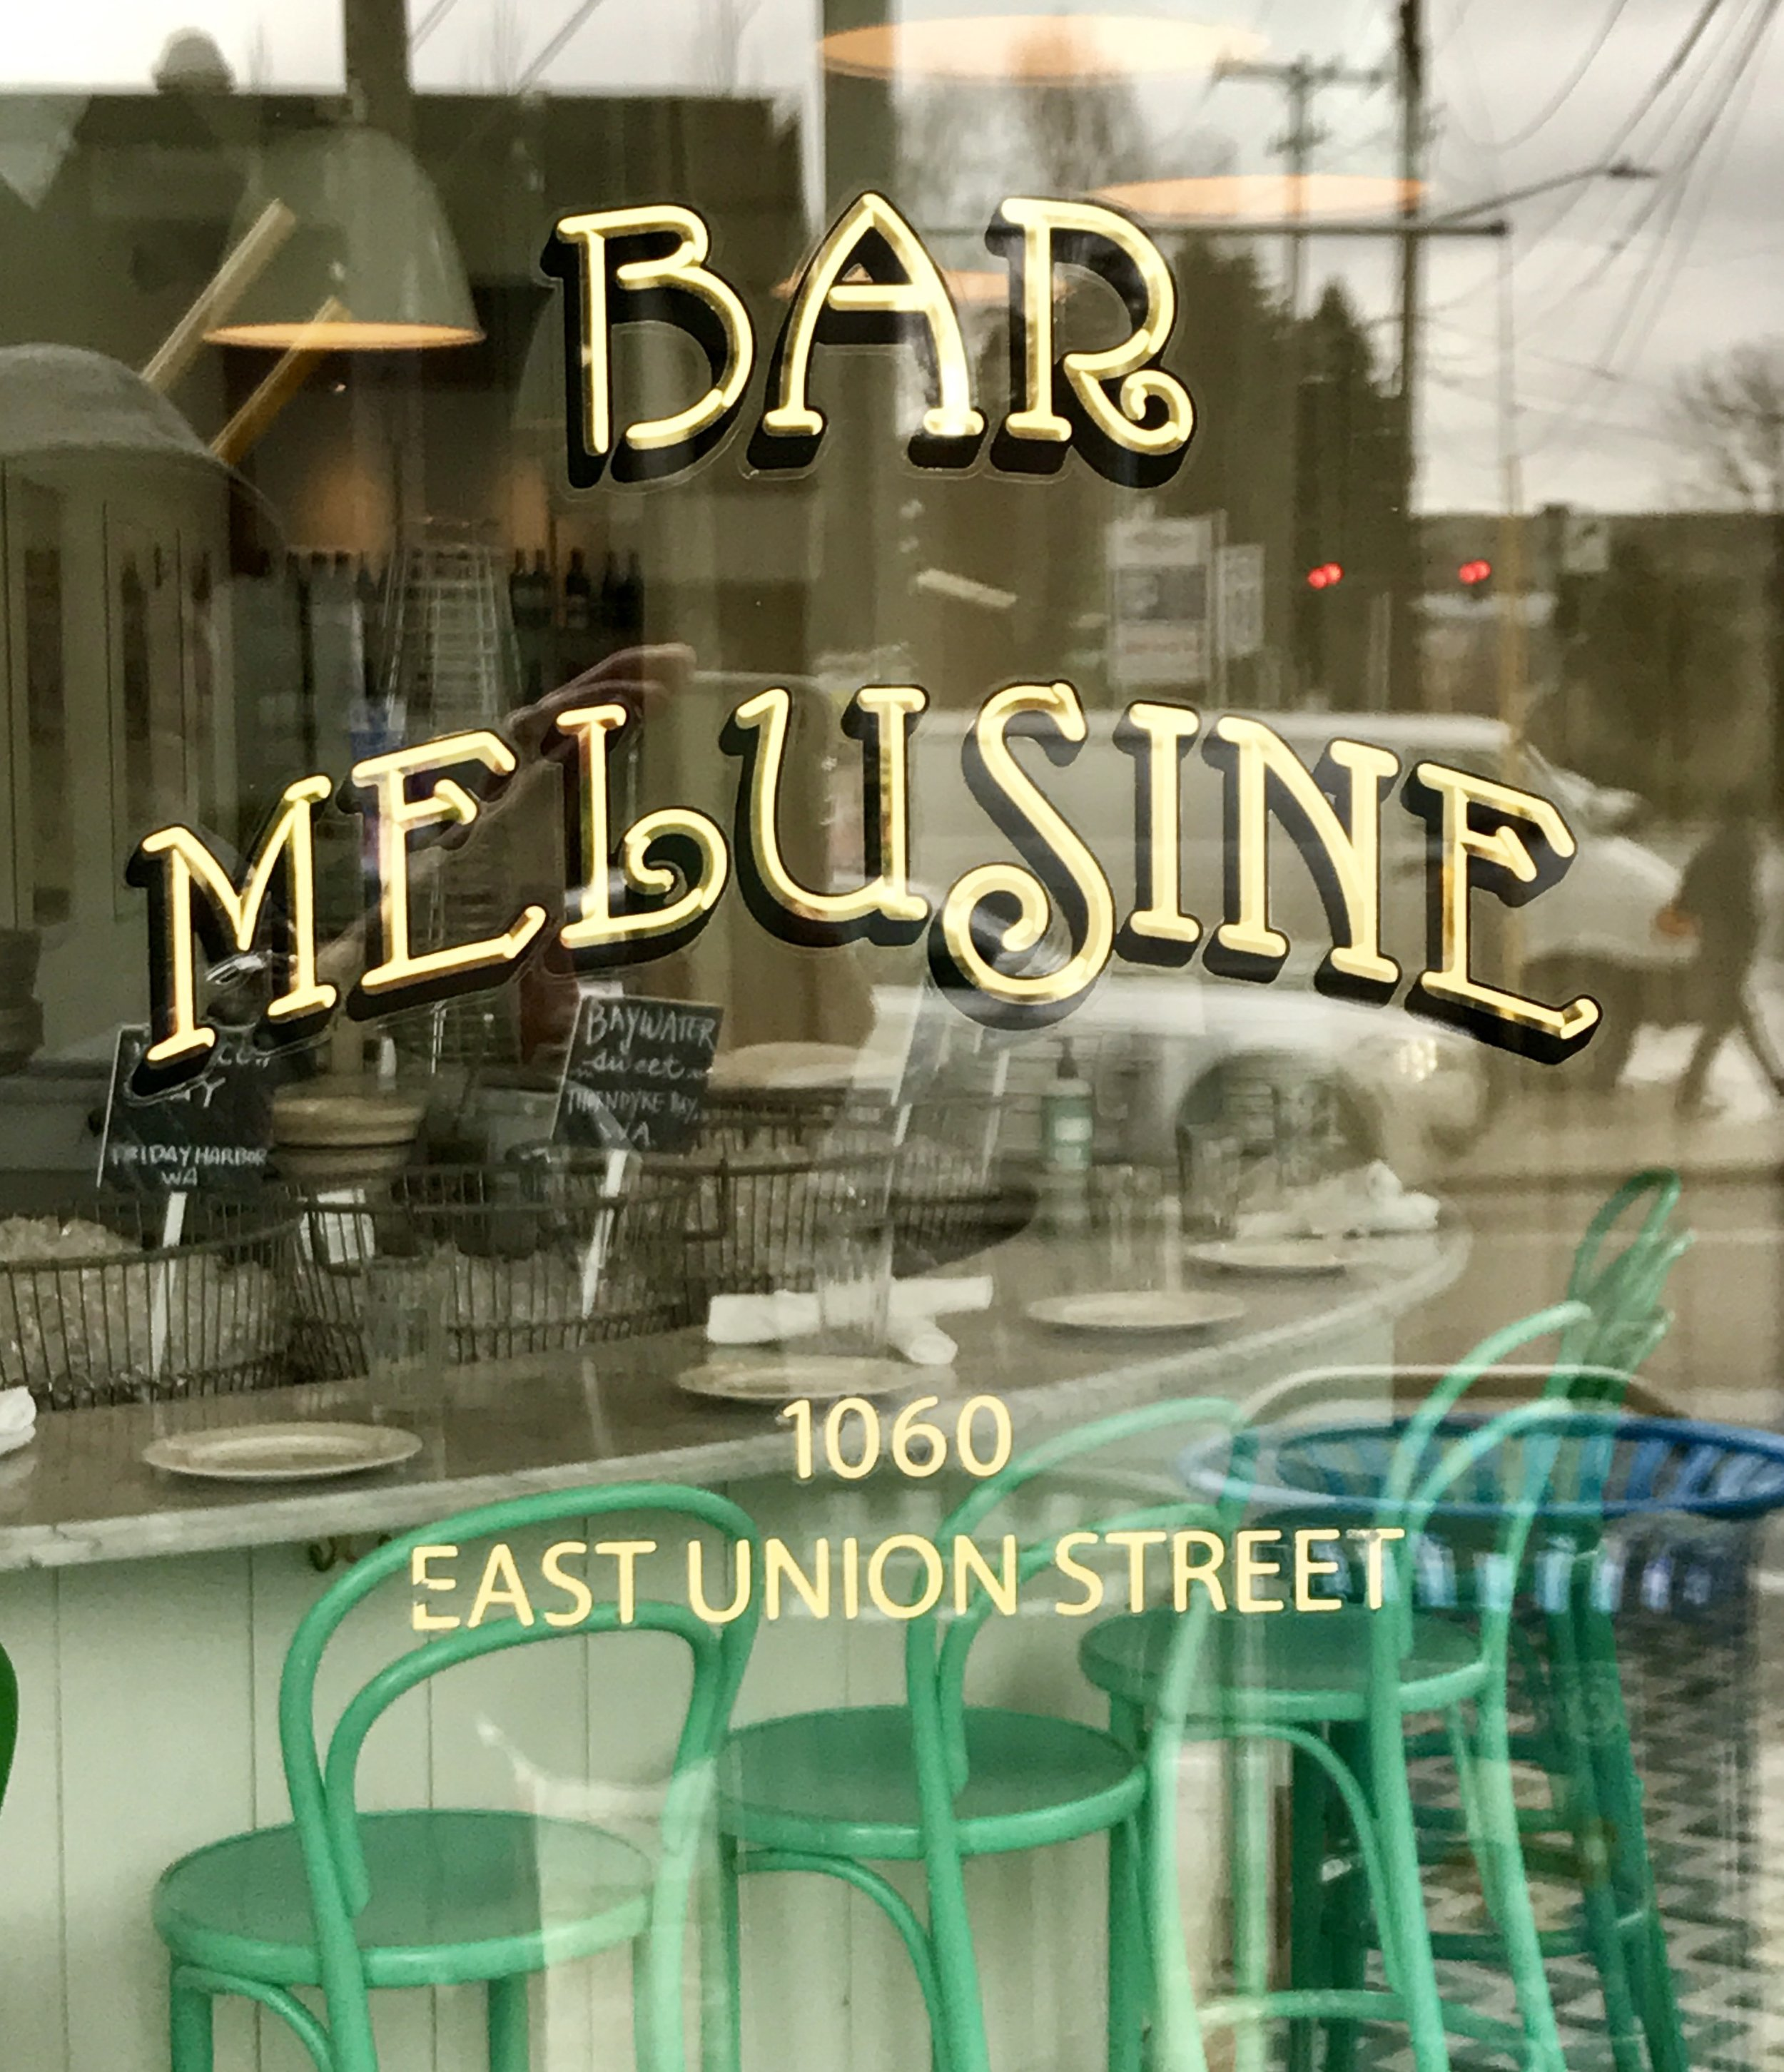 Cap Hill_Bar Melusine.jpg